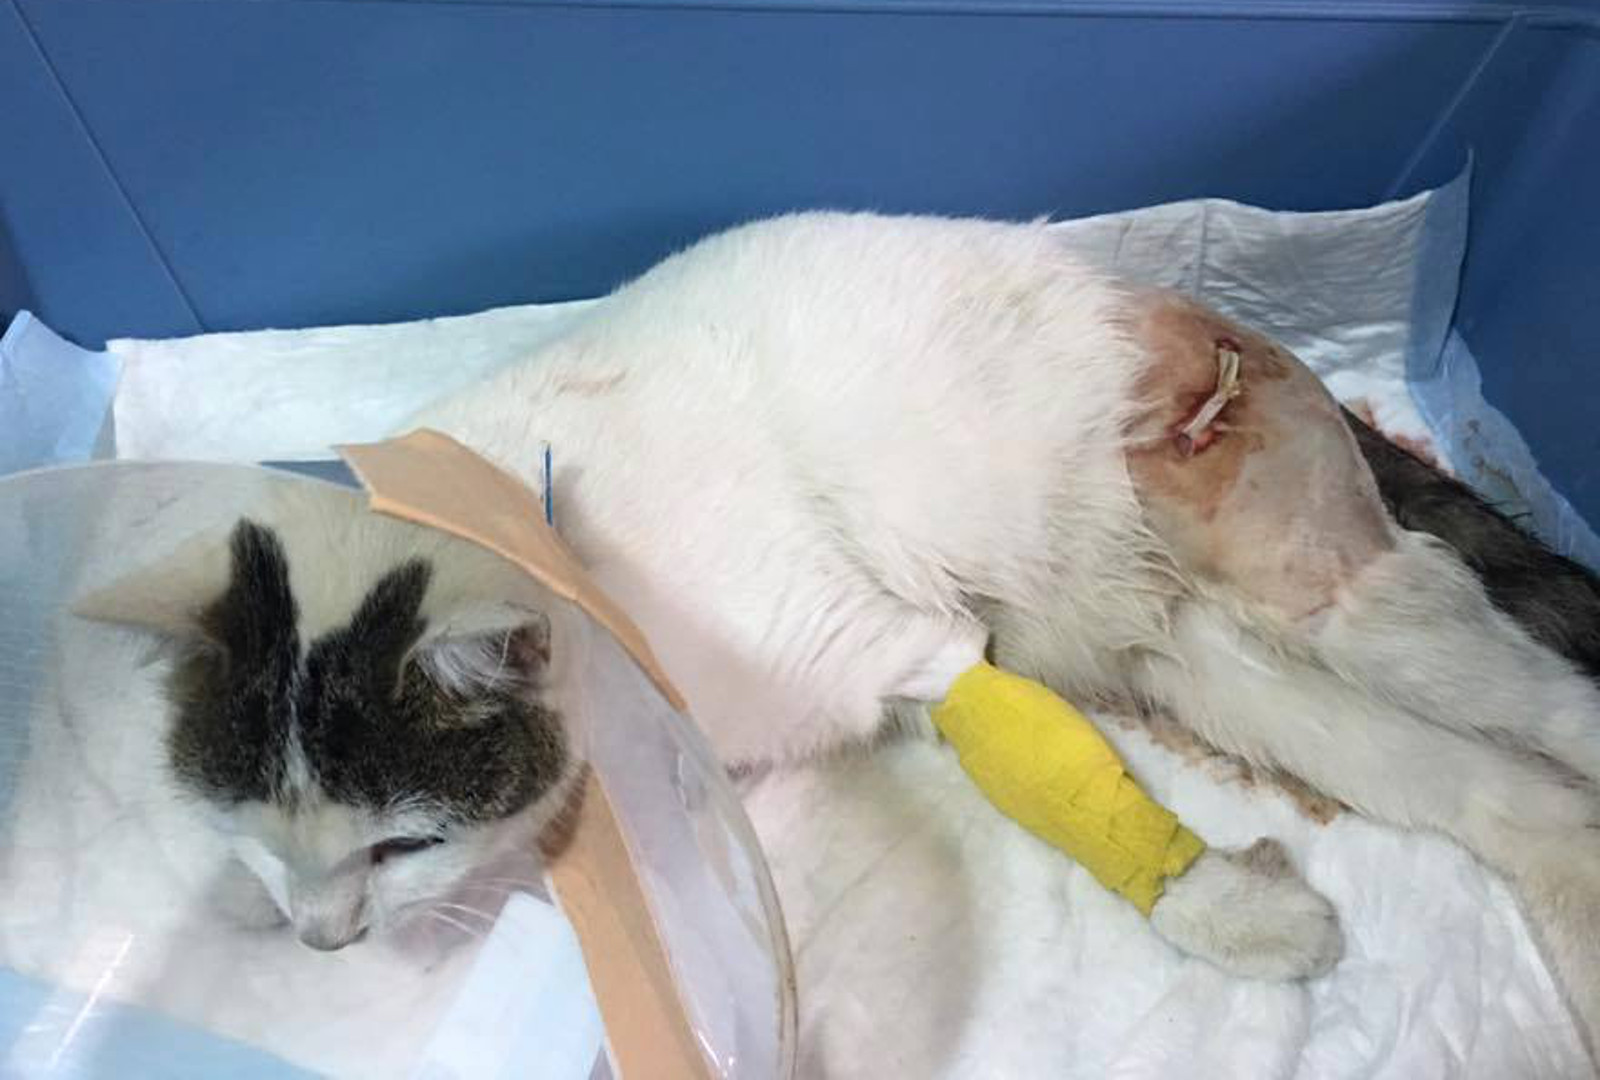 Urgent Help Needed to Save Hungry Homeless Cat Who Was Attacked by 4 Dogs